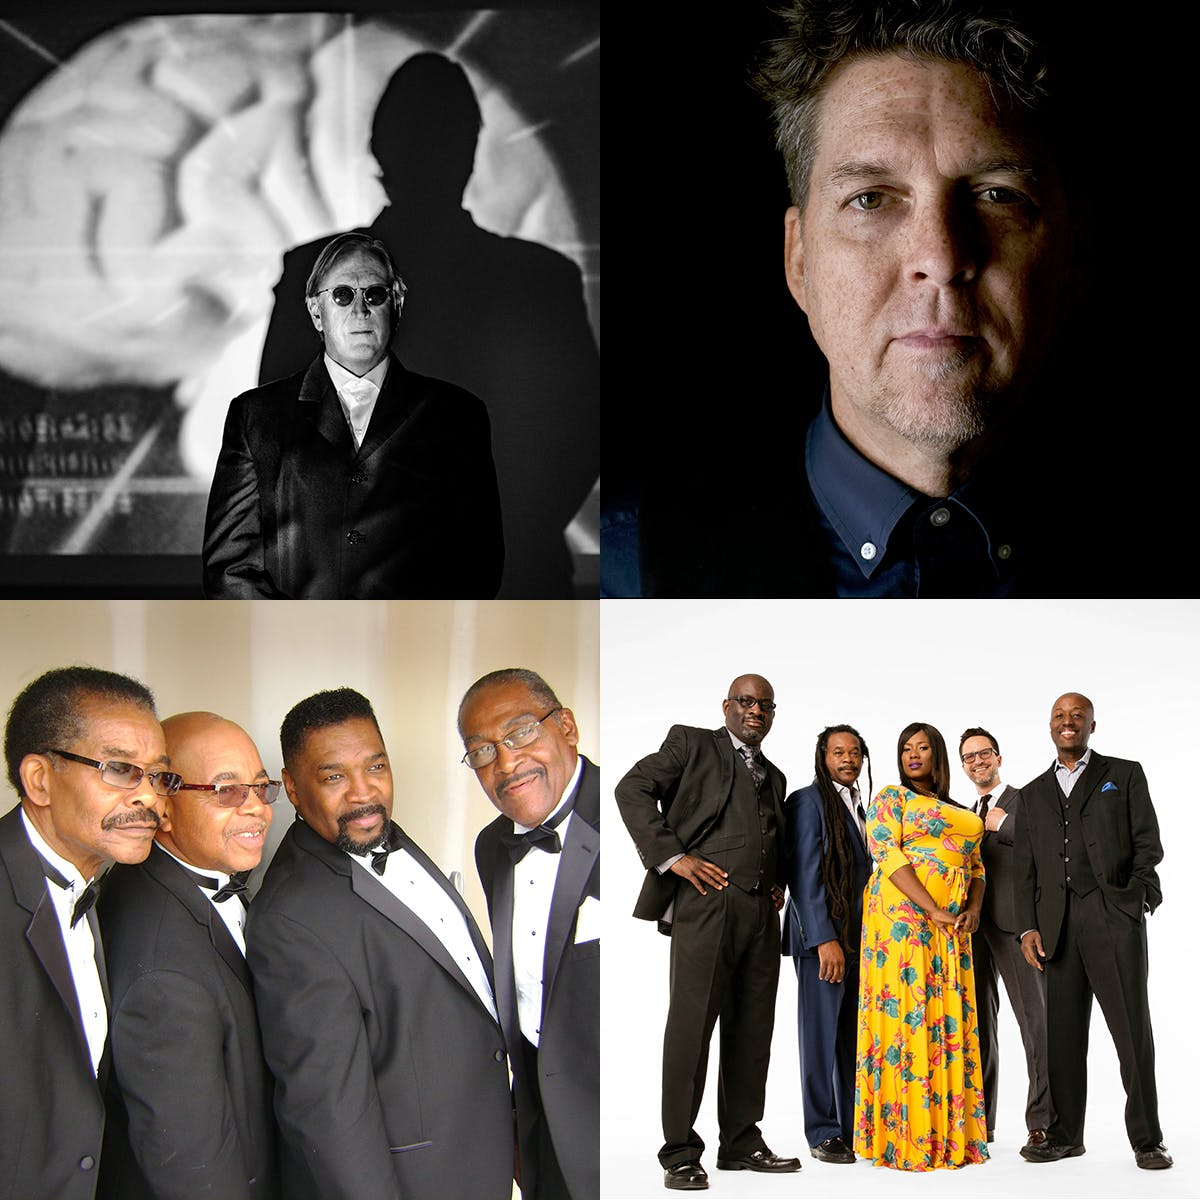 T Bone Burnett, Joe Henry, The Fairfield Four, Ranky Tanky